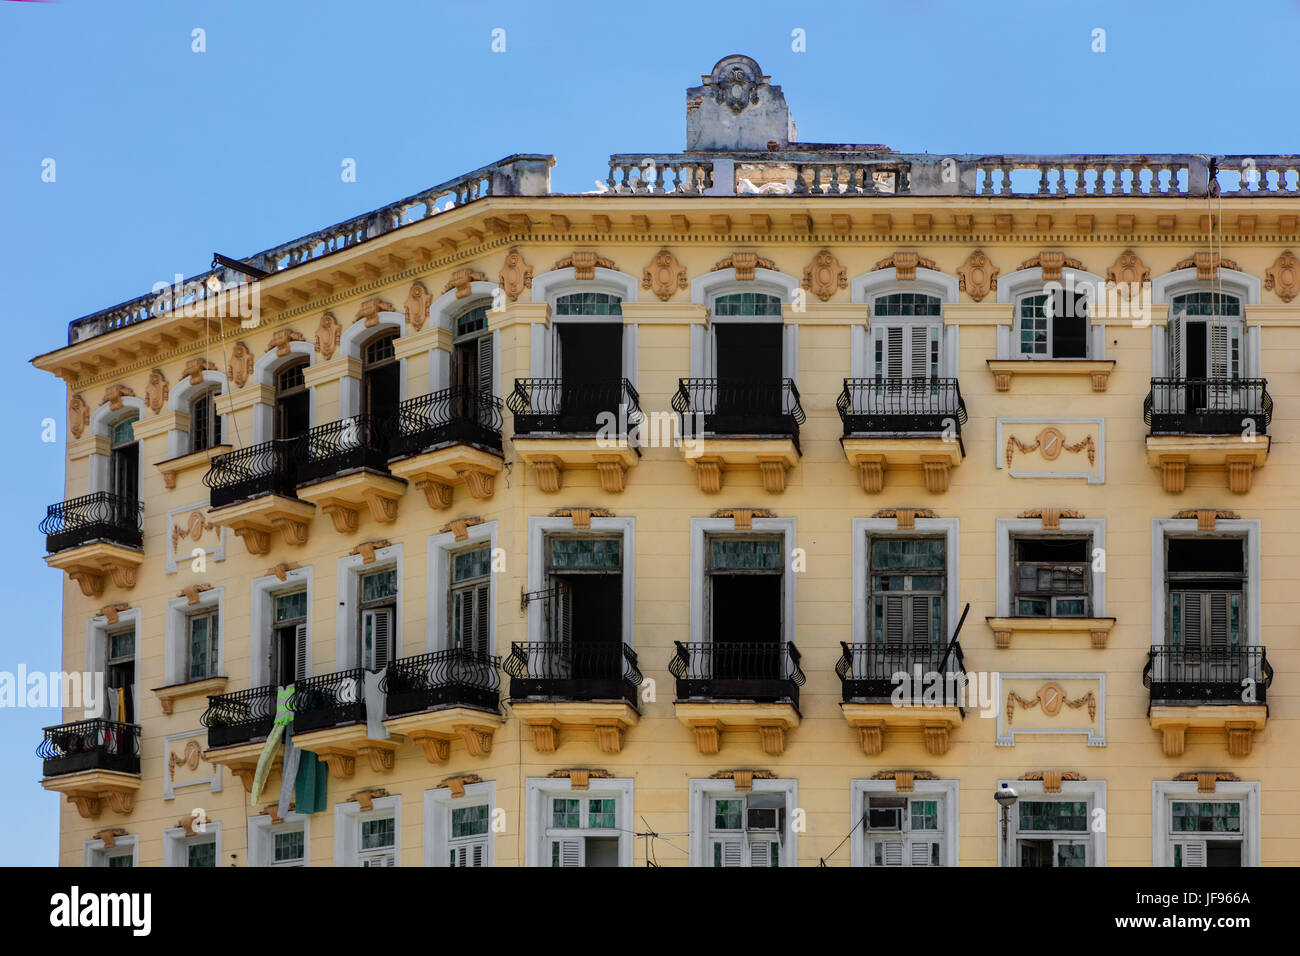 Historical architecture graces much of HABANA VIEJA  - HAVANA, CUBA - Stock Image